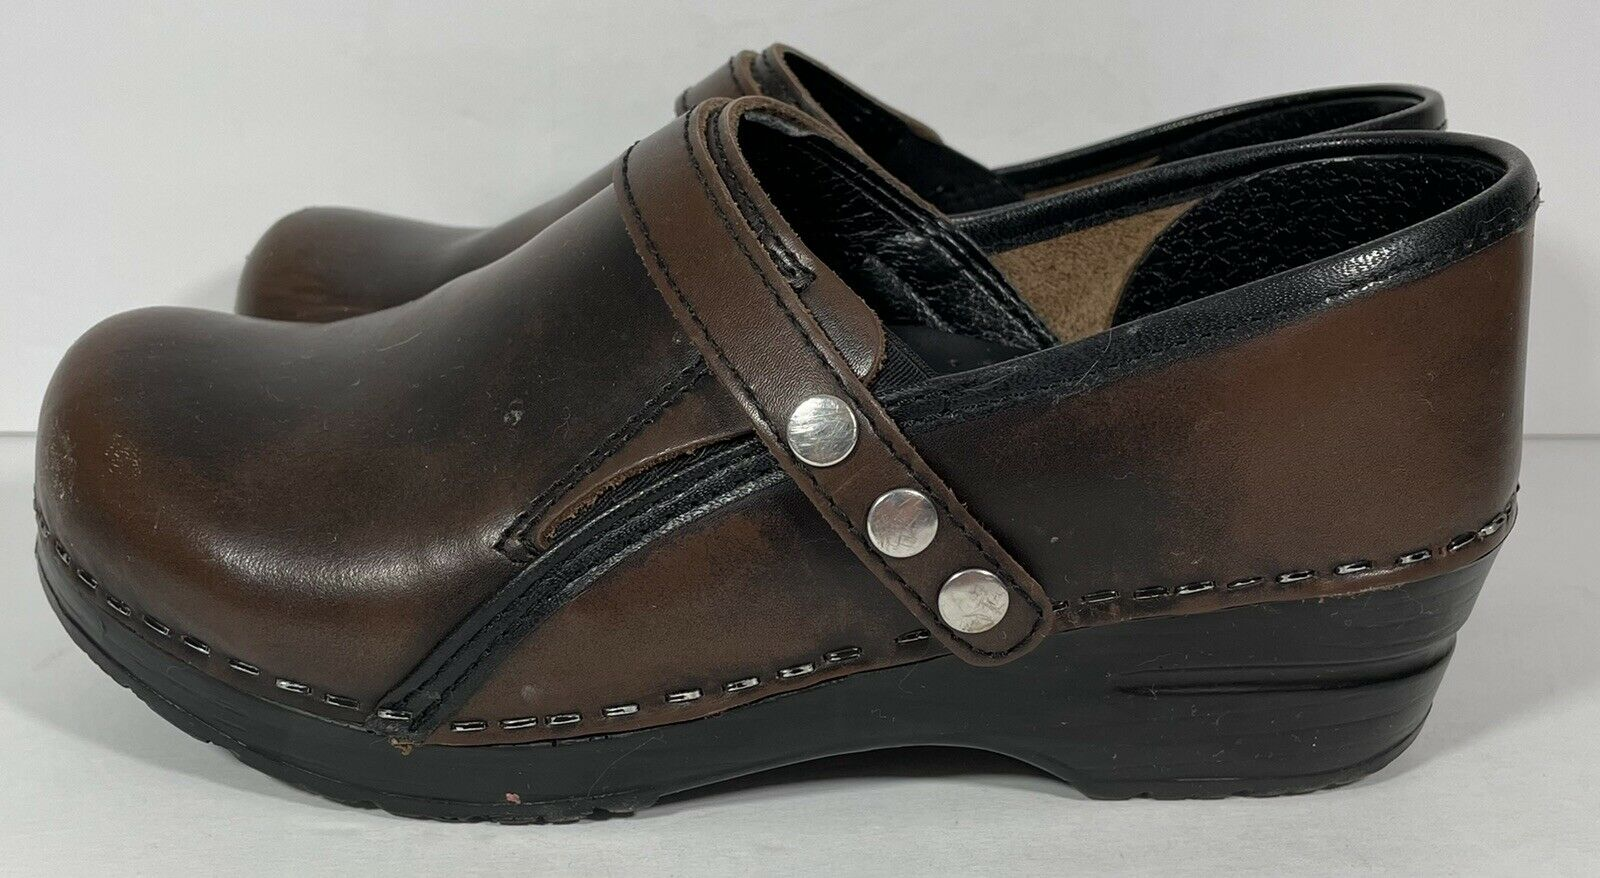 Sanita Womens Size Brown Leather Slip On Clogs Professional Size 36 US 5.5 - 6